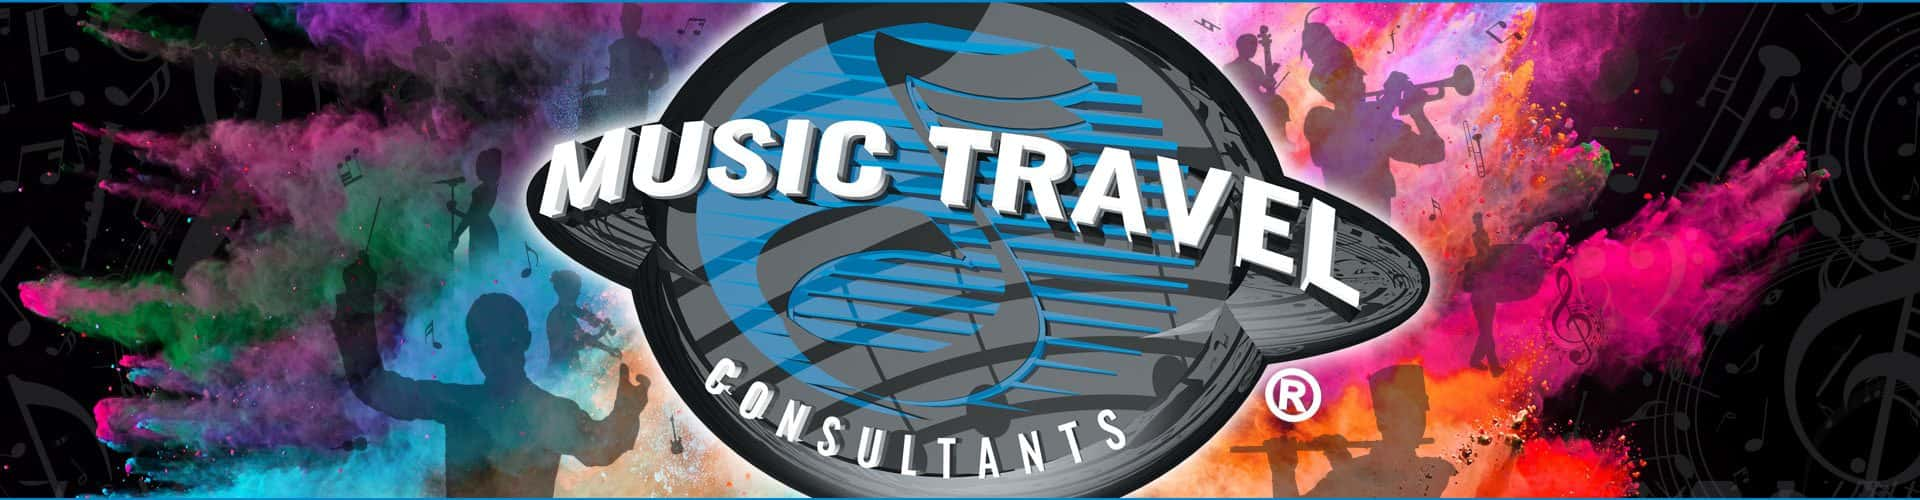 Music Travel Consultants Banner Background